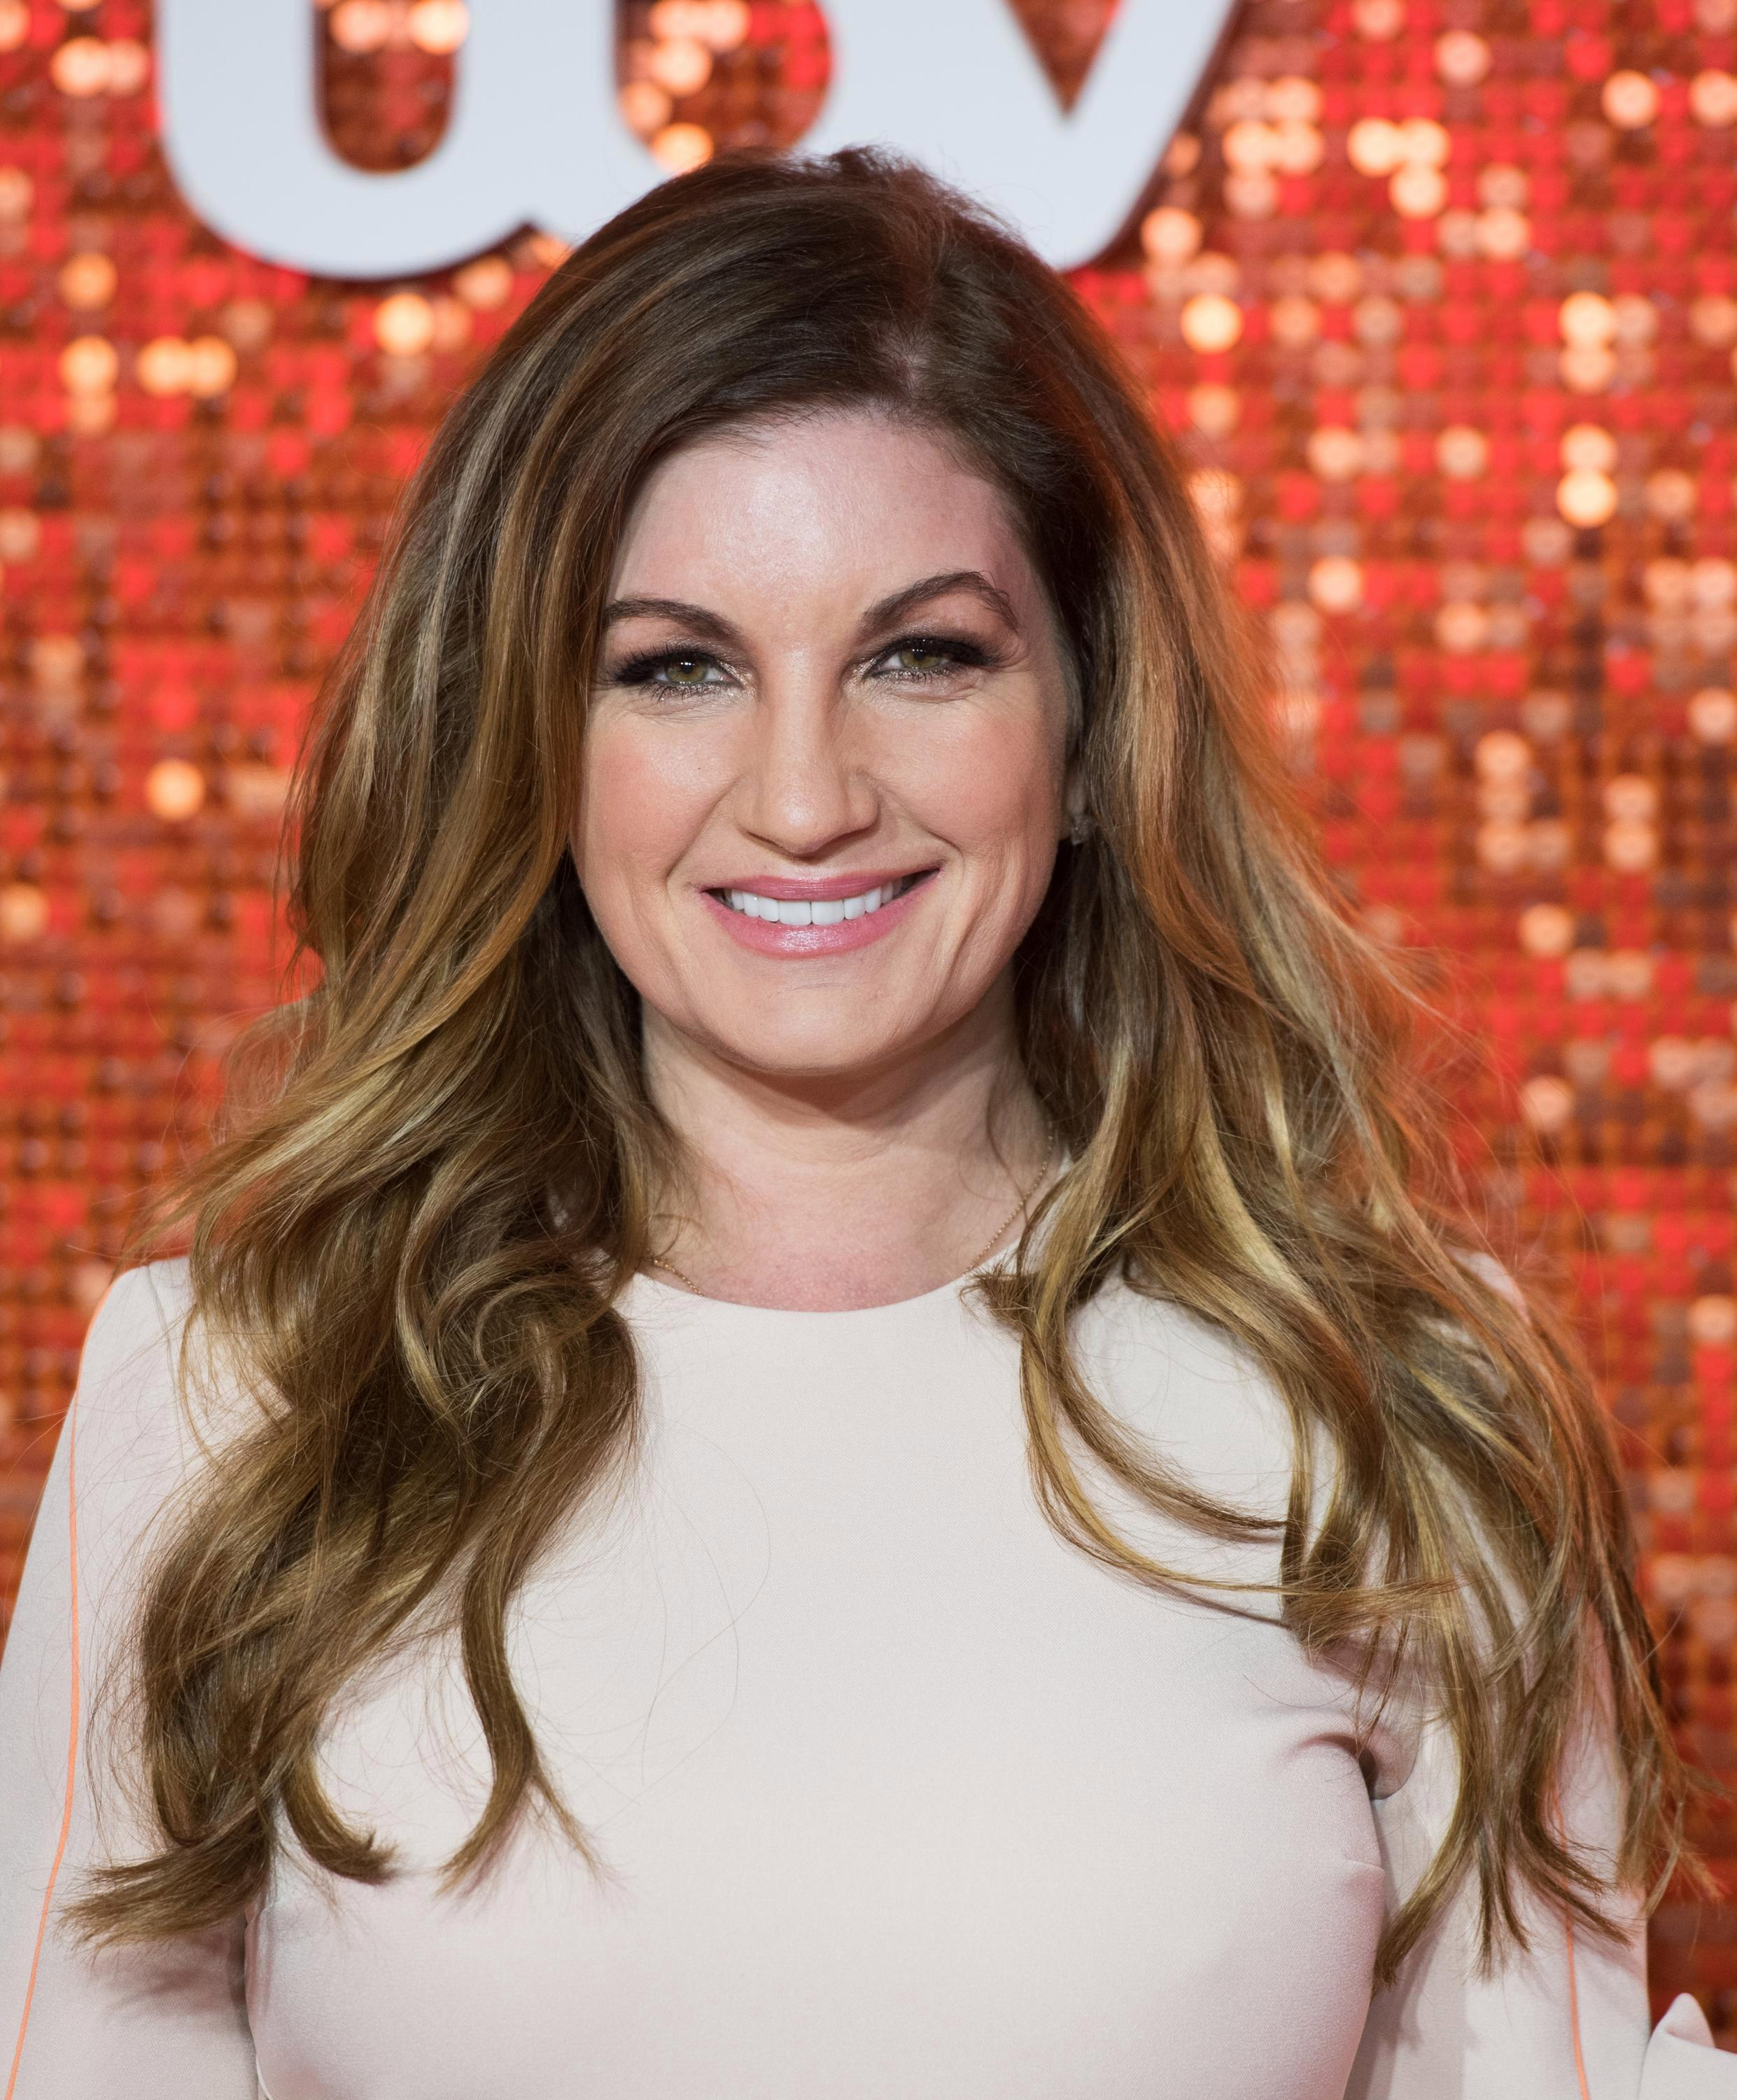 Apprentice star Karren Brady hits out at Britain's 'unjustifiable' £14bn foreign aid budget